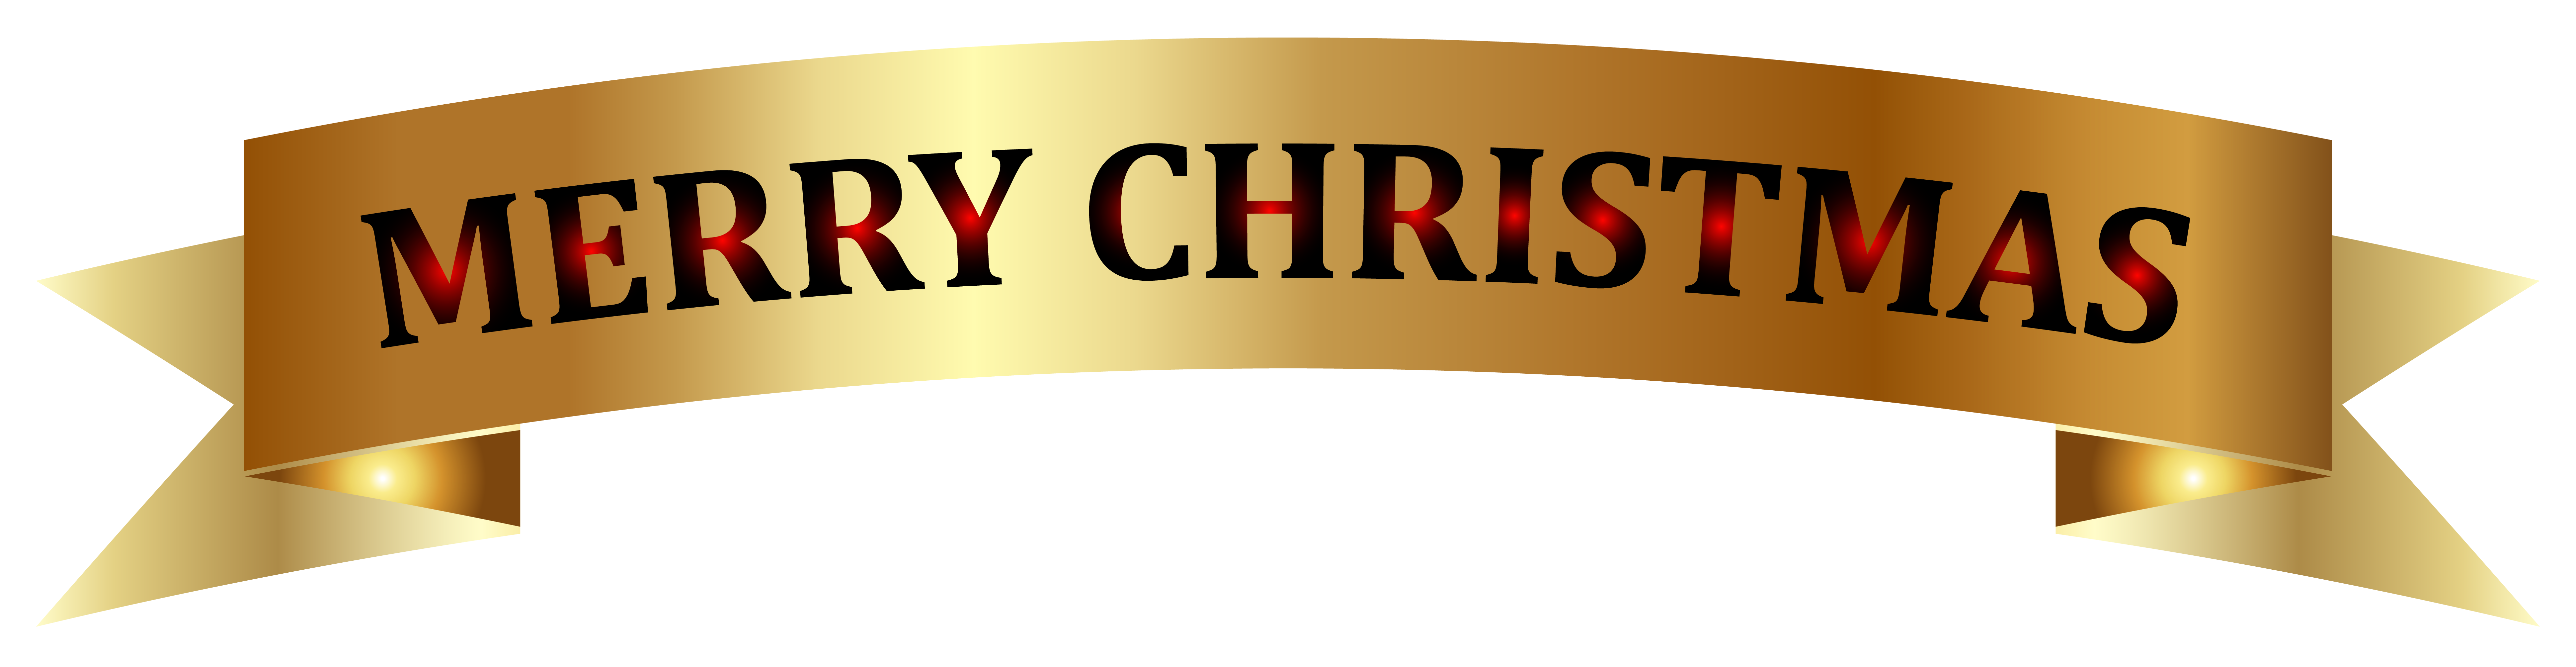 Merry christmas banner clipart clip art free download Golden Merry Christmas Banner PNG Clip-Art Image | Gallery ... clip art free download